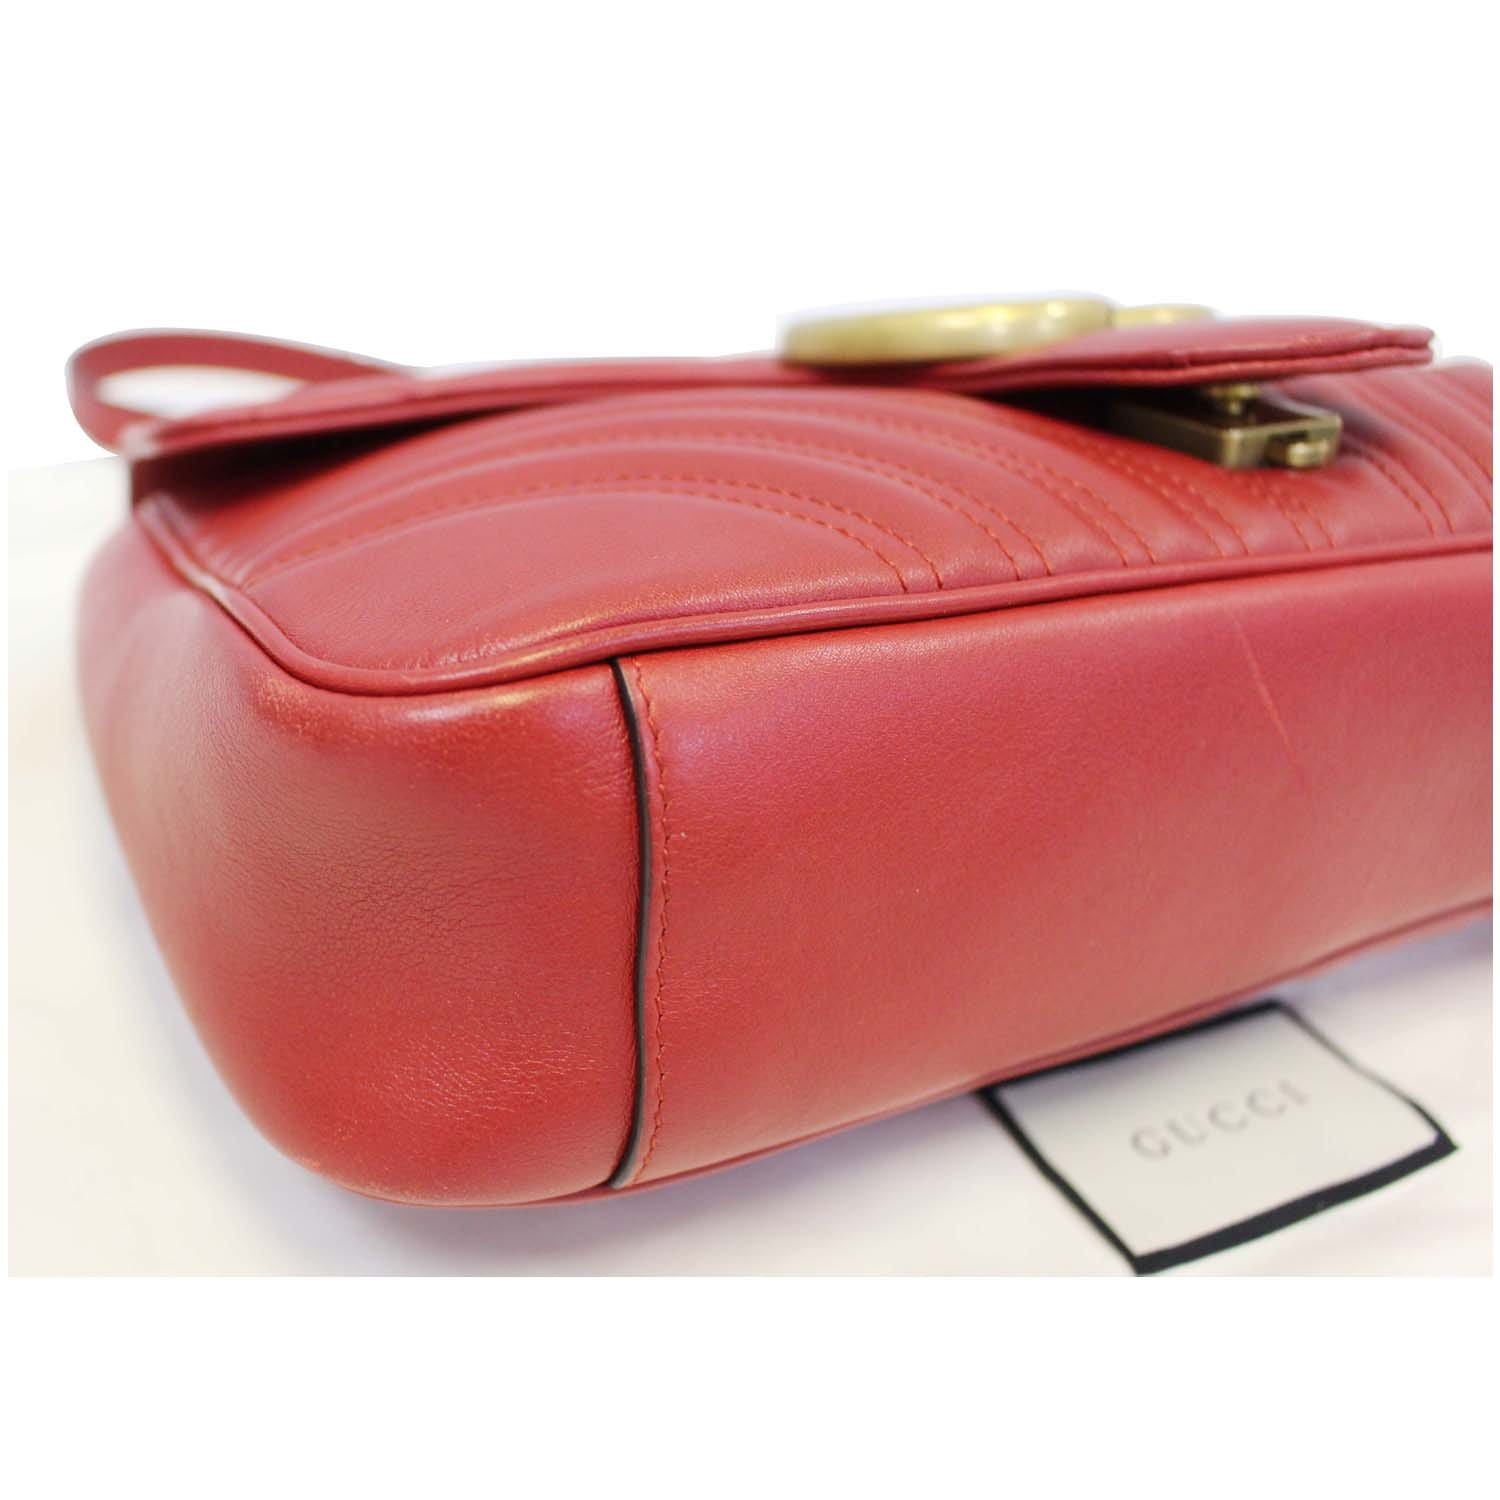 bb4060e15a0fba GUCCI GG Marmont Matelasse Red Leather Shoulder Bag-US